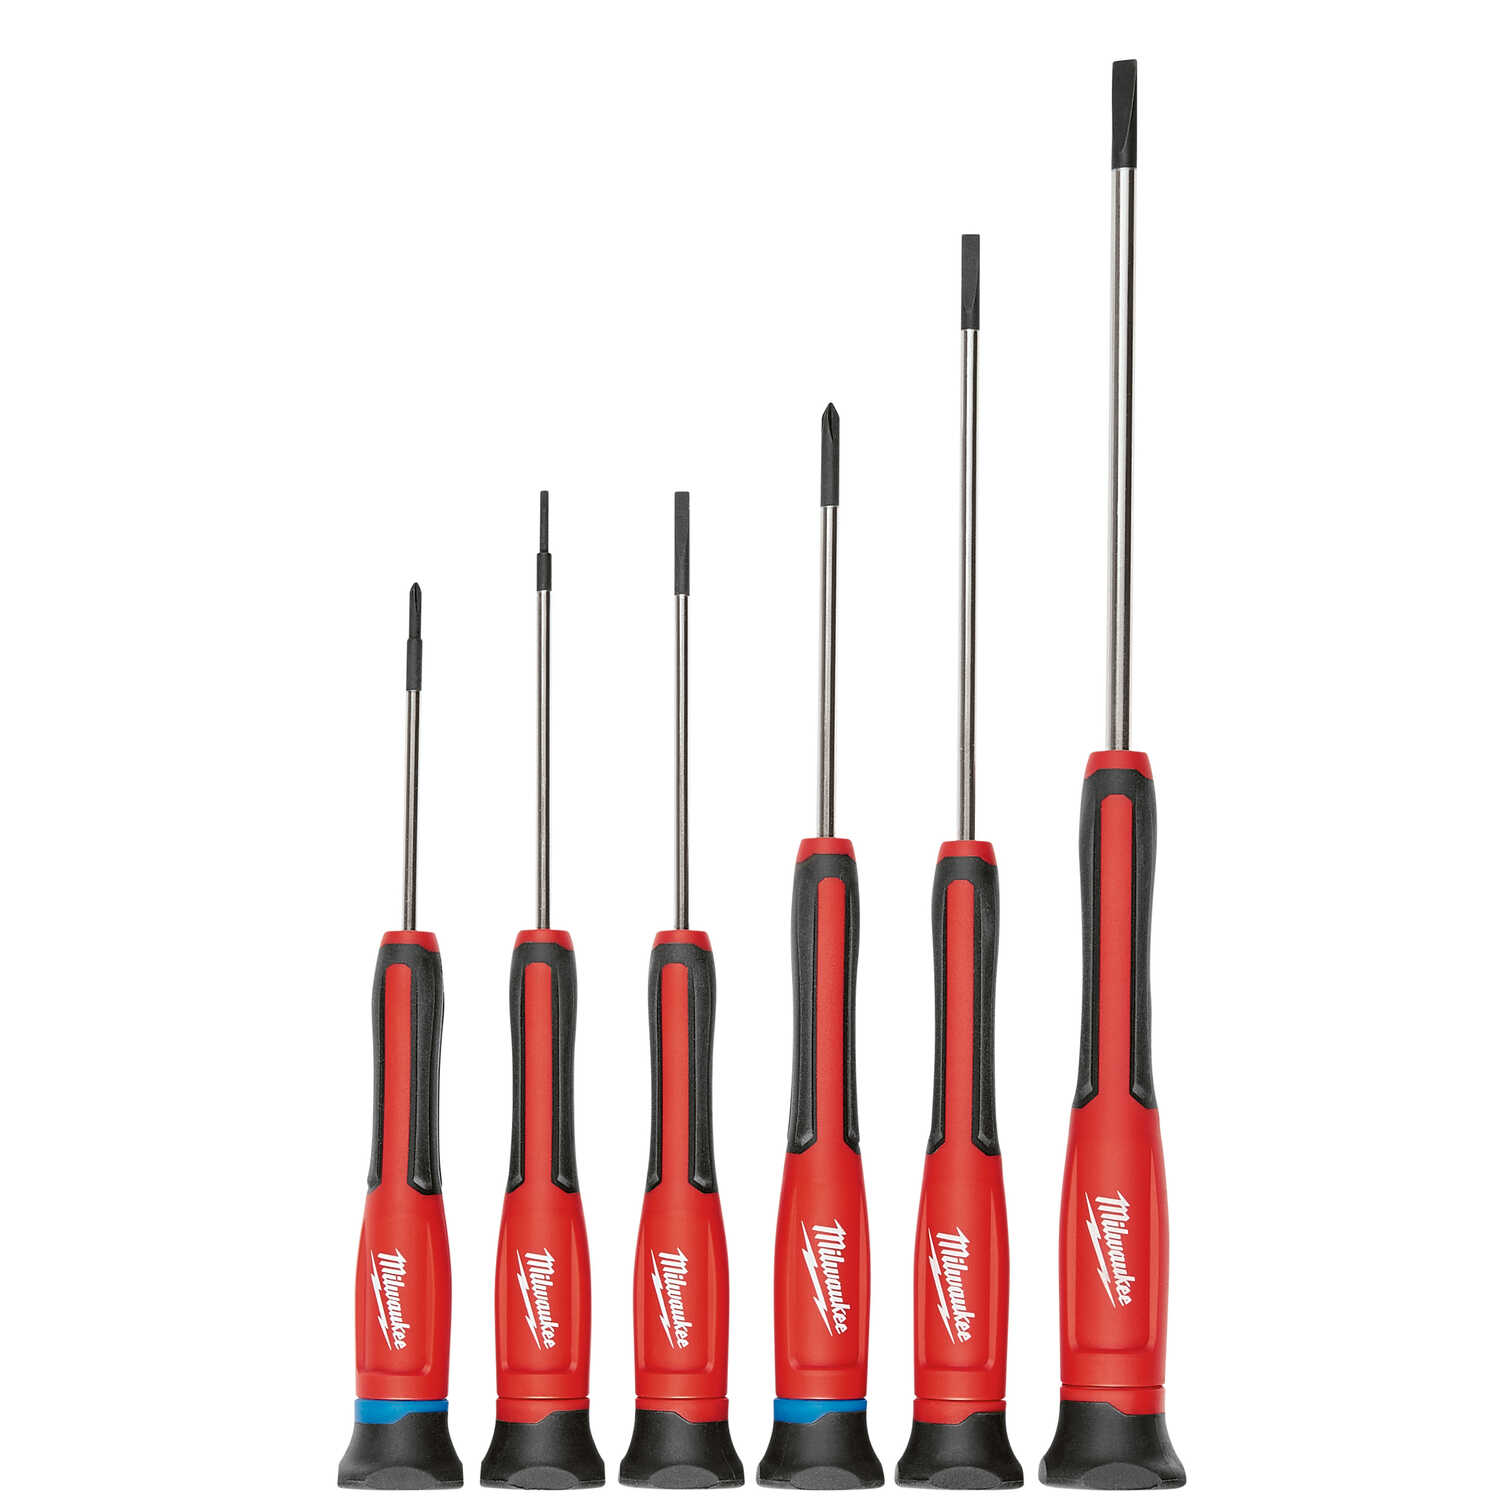 Milwaukee  6 pc. Assorted  Precision Screwdriver Set  6.0 in. Chrome-Plated Steel